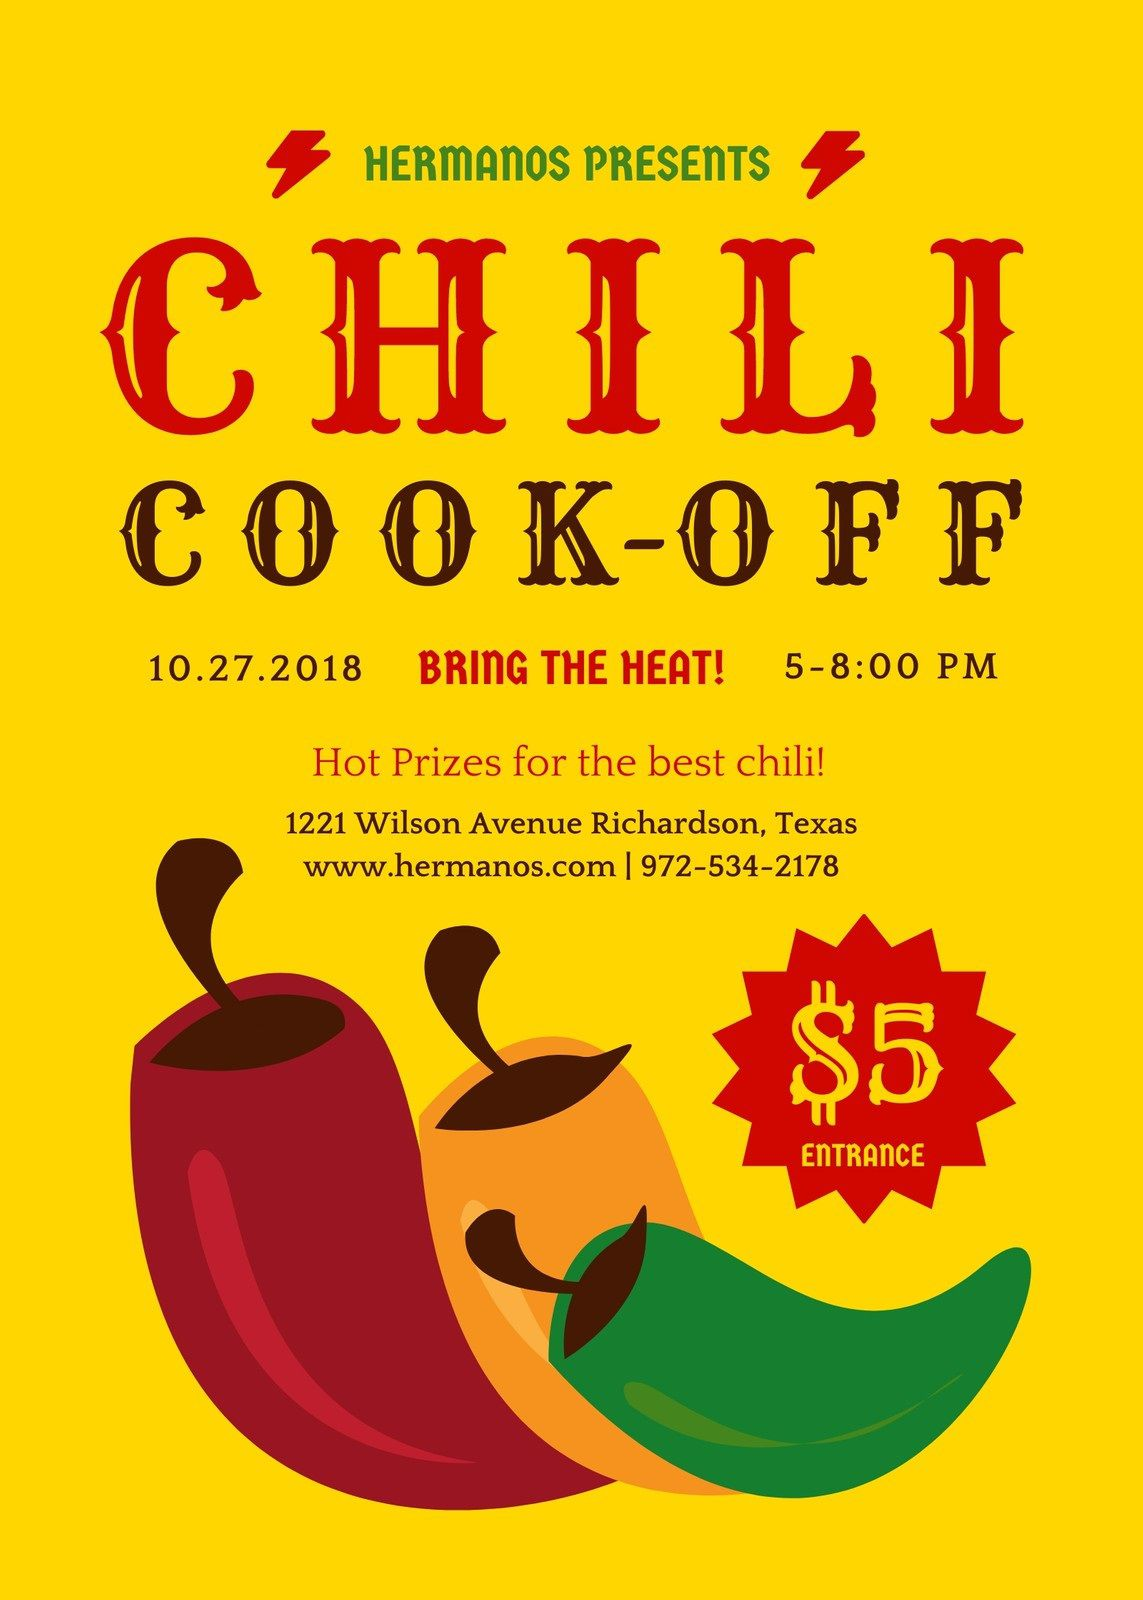 008 Excellent Chili Cook Off Flyer Template Example  Halloween Office PowerpointFull